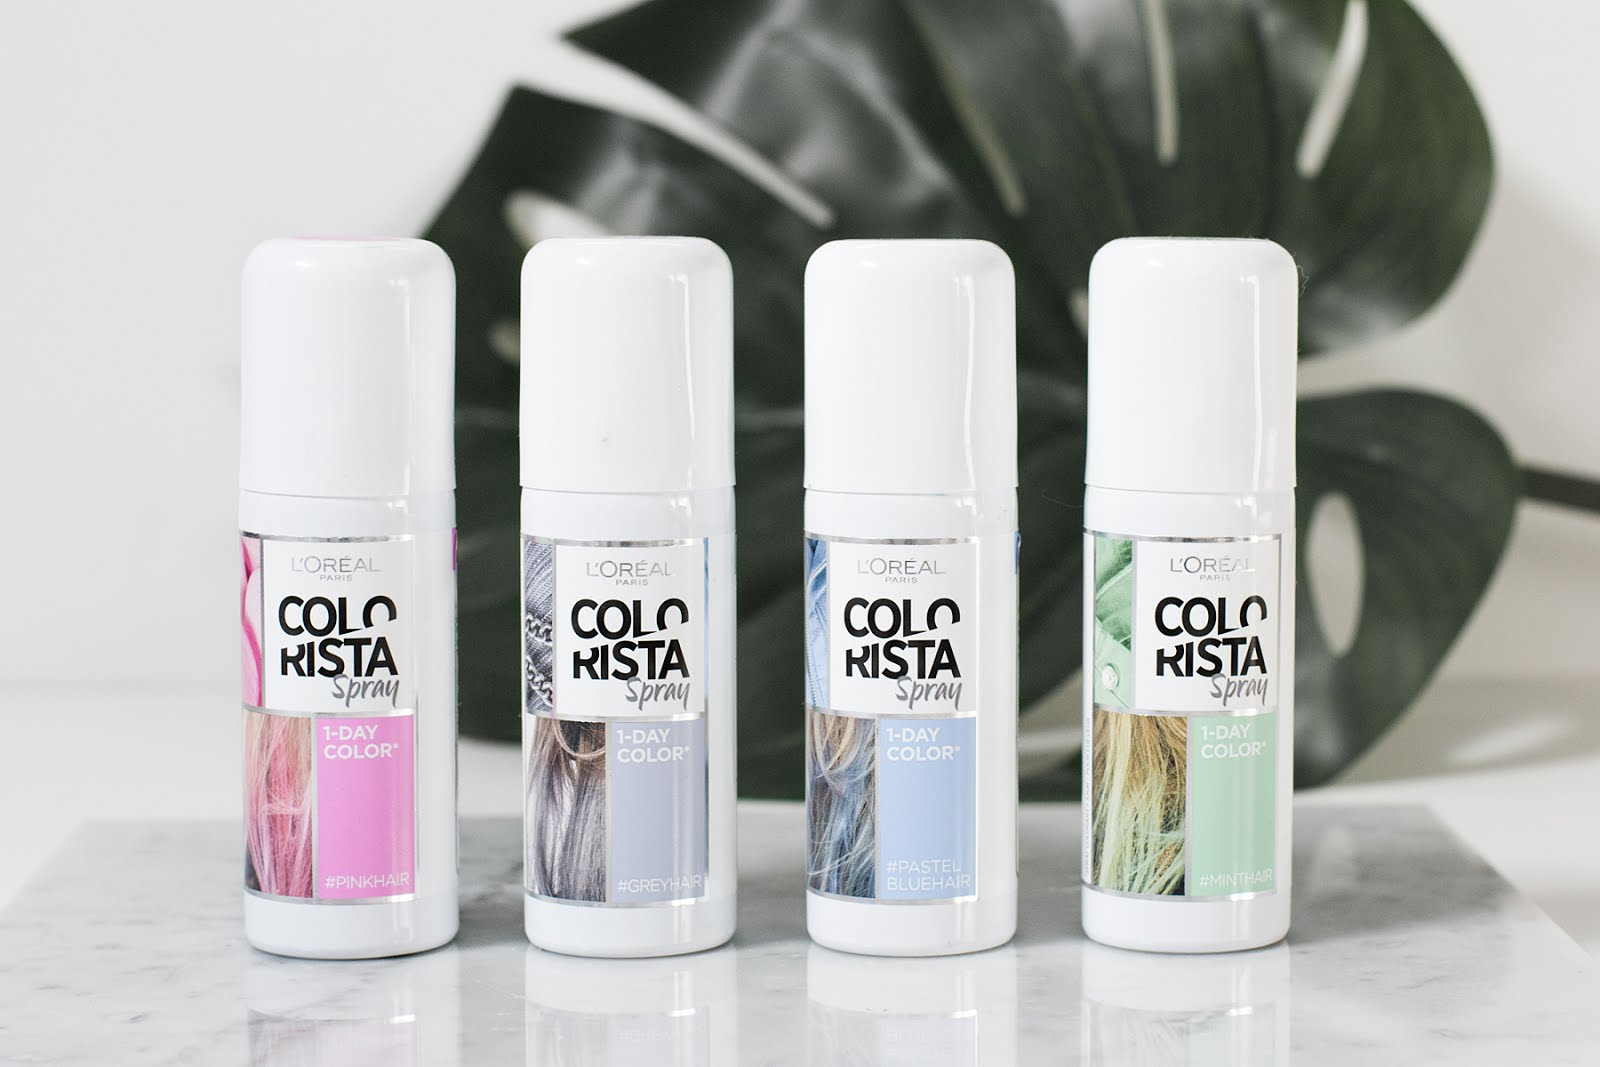 L'oreal colorista, spray, pink, blue, grey, green, review, test, hair, blonde, white, festival hair, colored hairspray